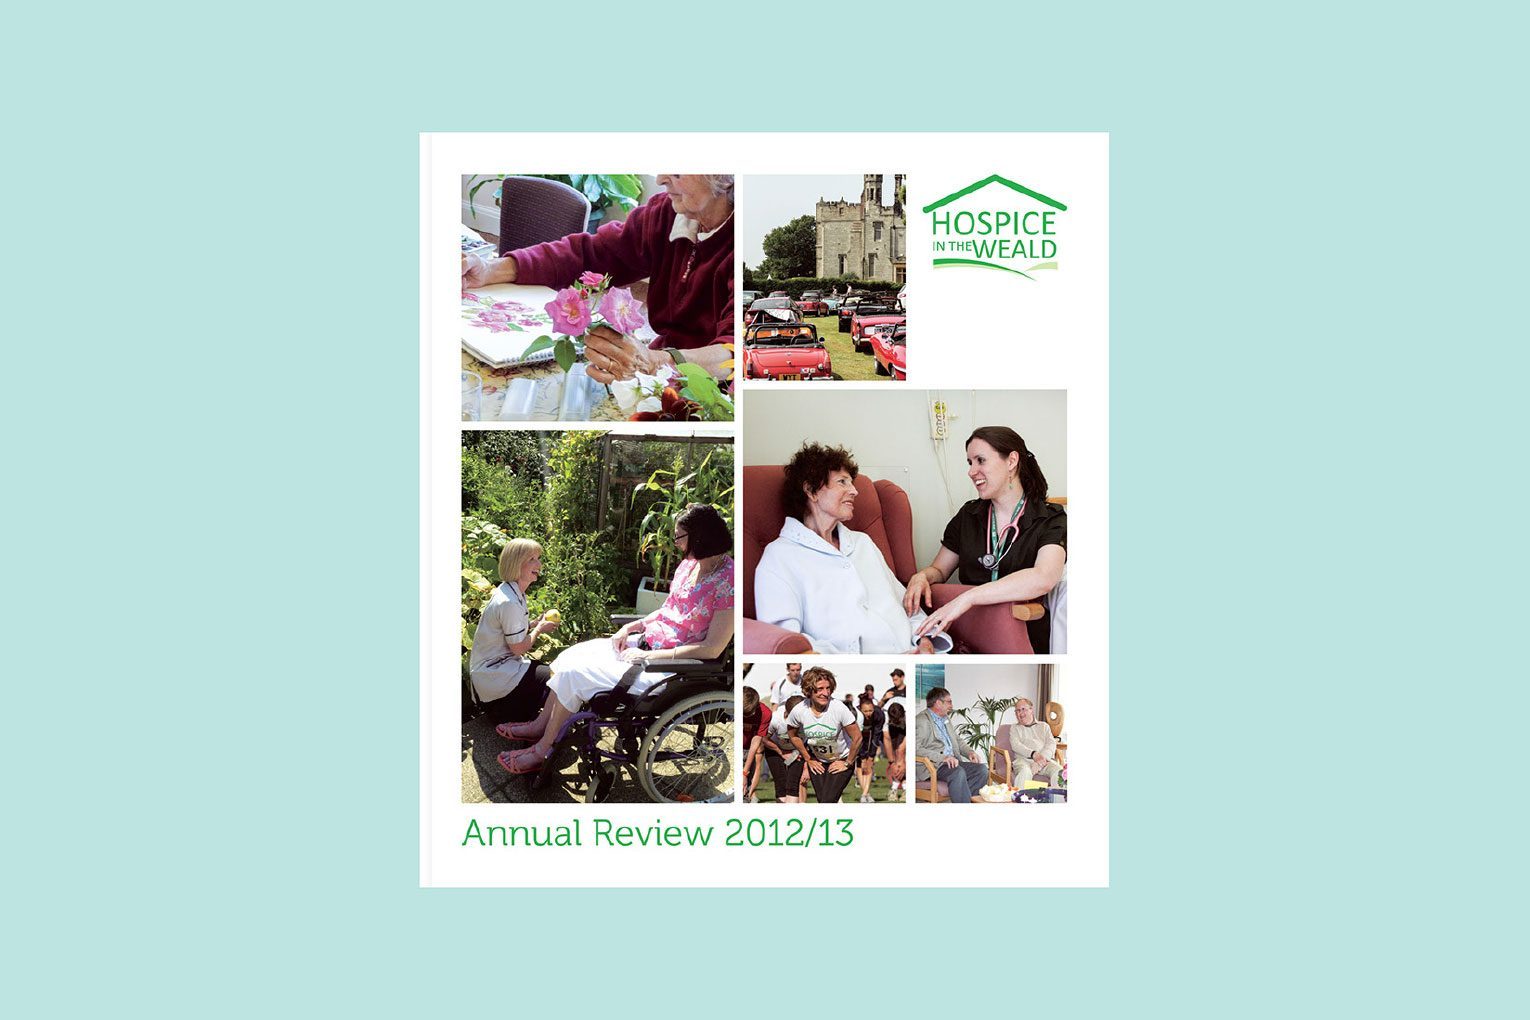 Montage of patients and fundraisers on the cover of the Annual Review